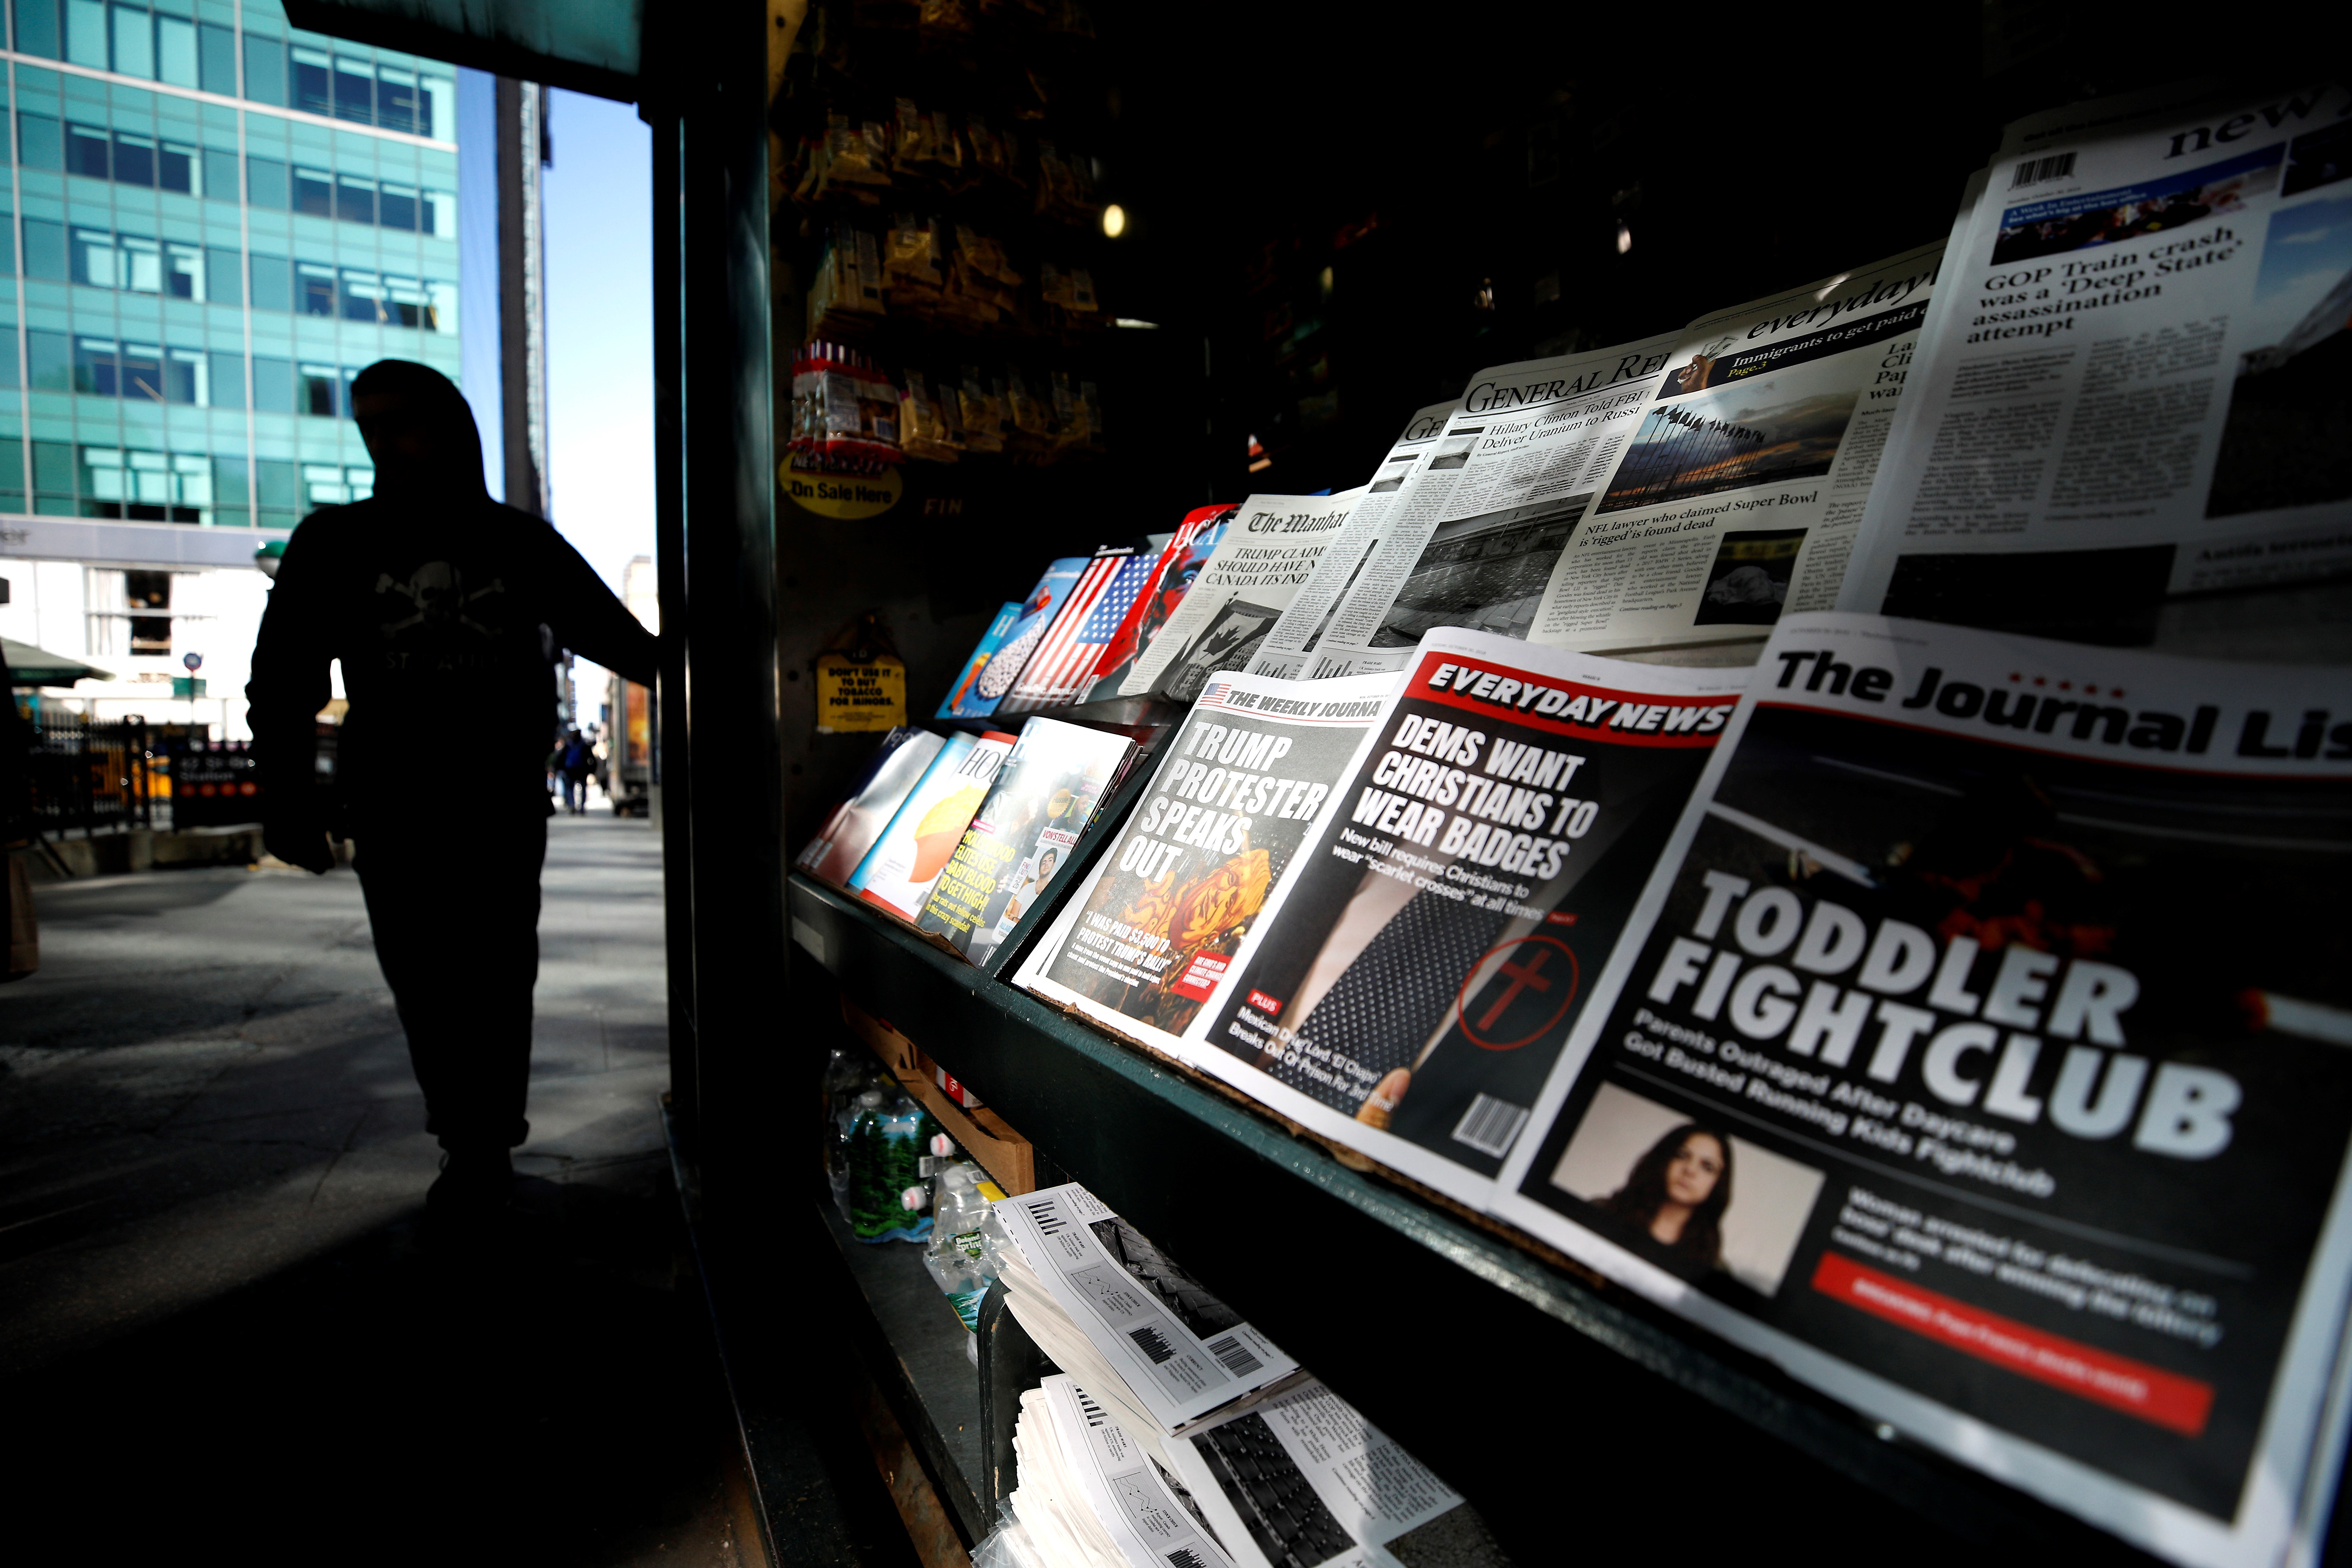 A misinformation news stand is seen in Manhattan, New York on October 30, 2018.